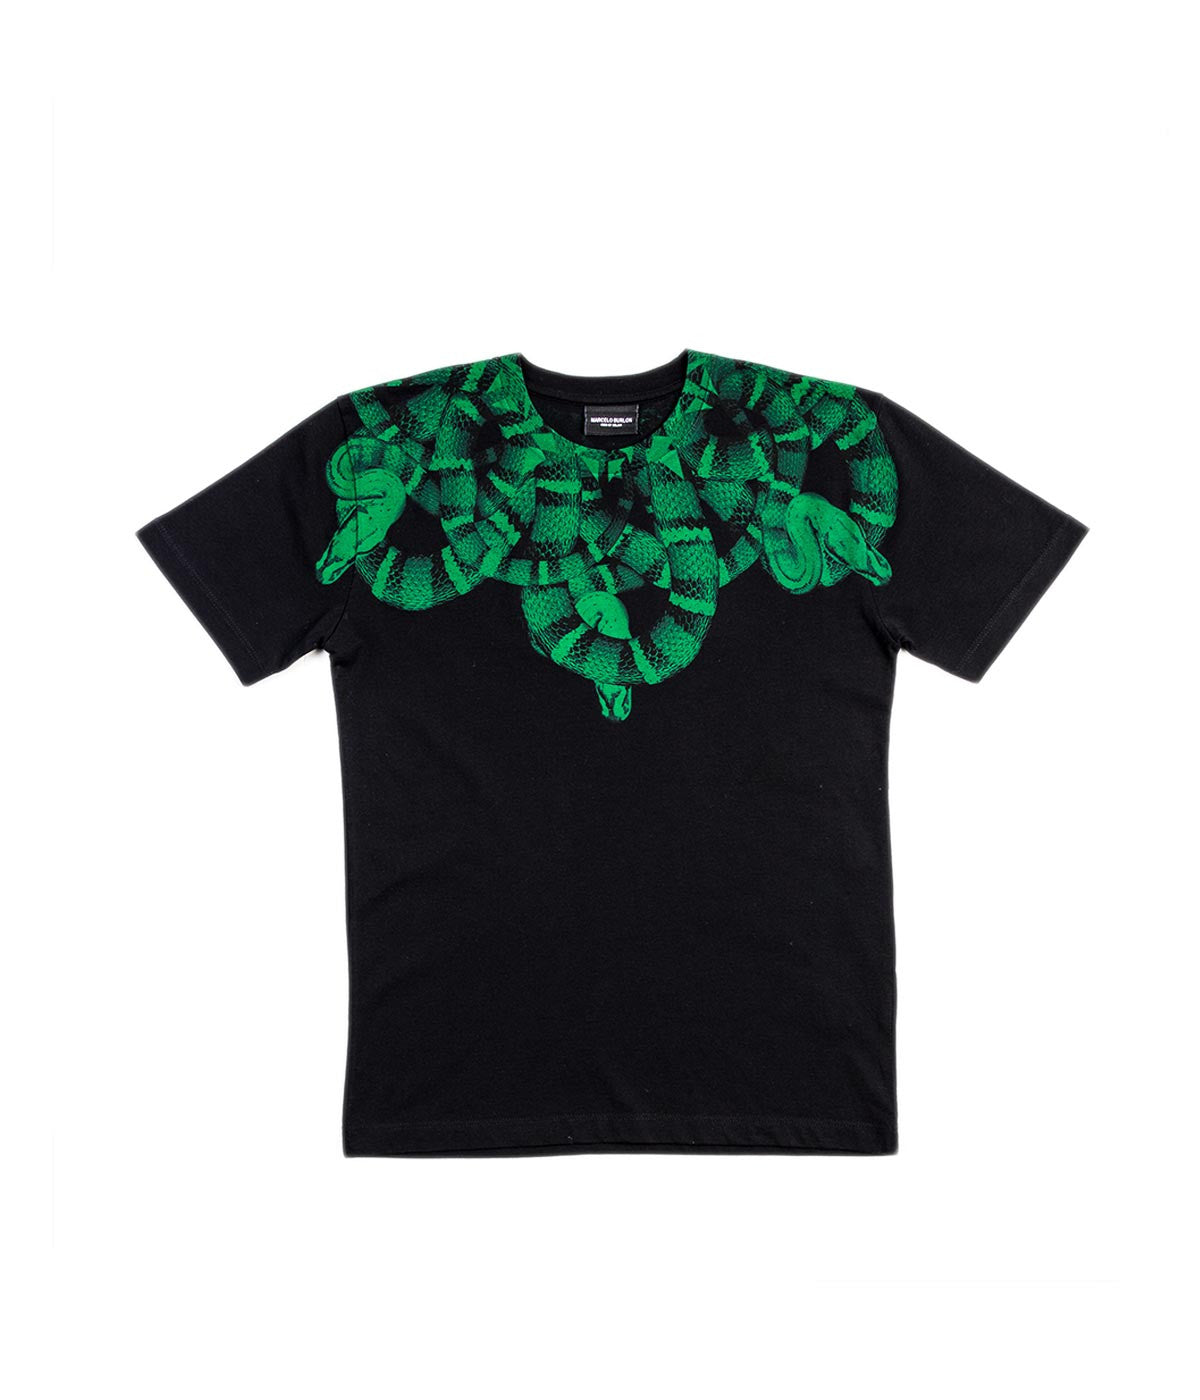 Kids Green Snake T-shirt